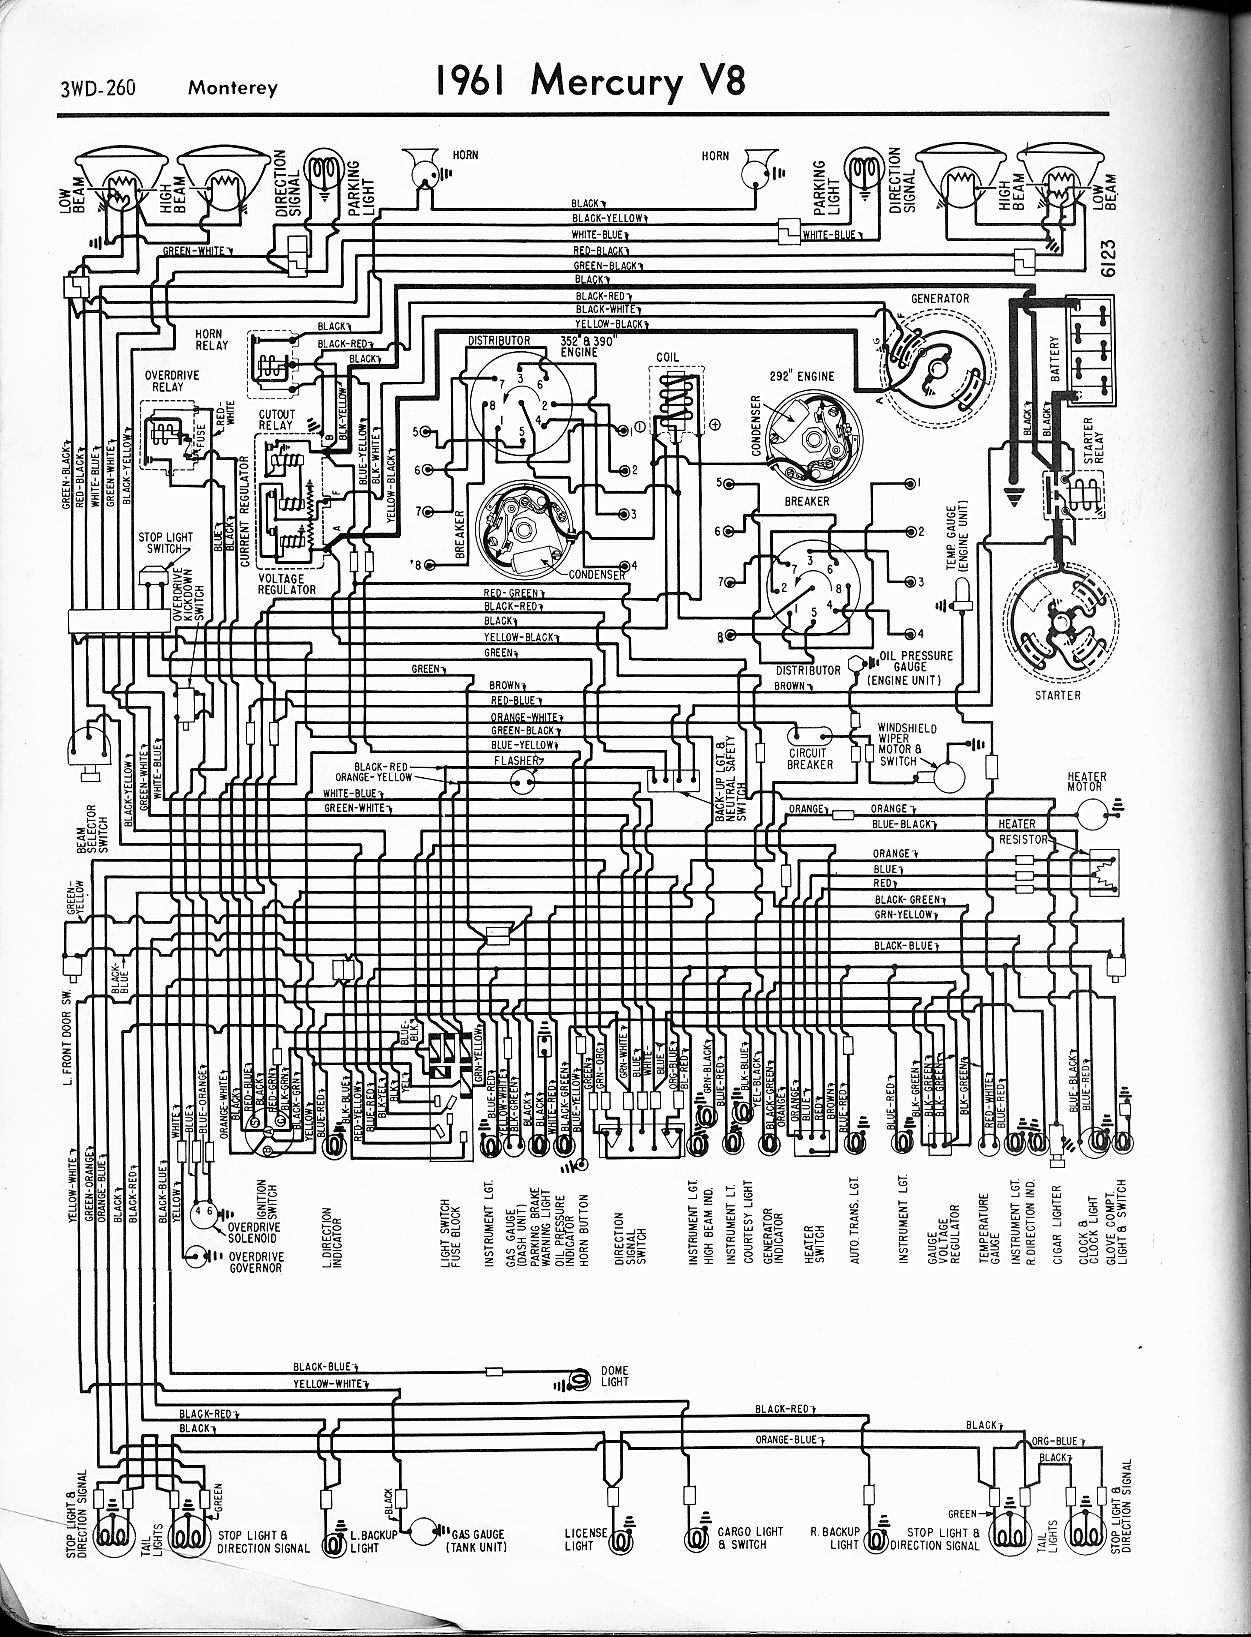 MWire5765 260 mercury wiring diagrams the old car manual project Chevy Ignition Wiring Diagram at crackthecode.co